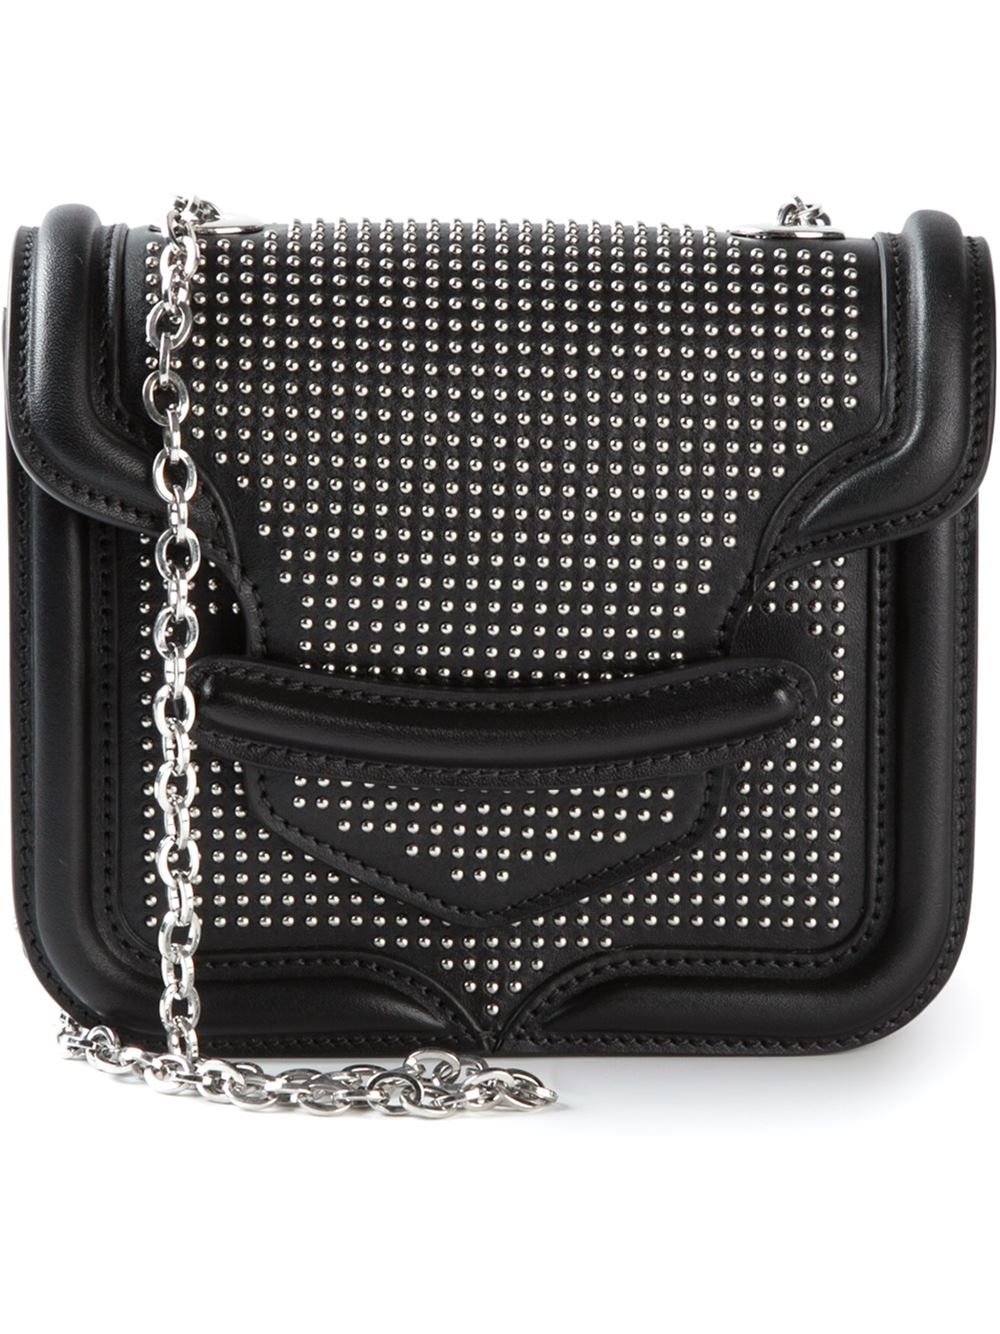 Alexander mcqueen Heroine Mini Studded Shoulder Bag in ...